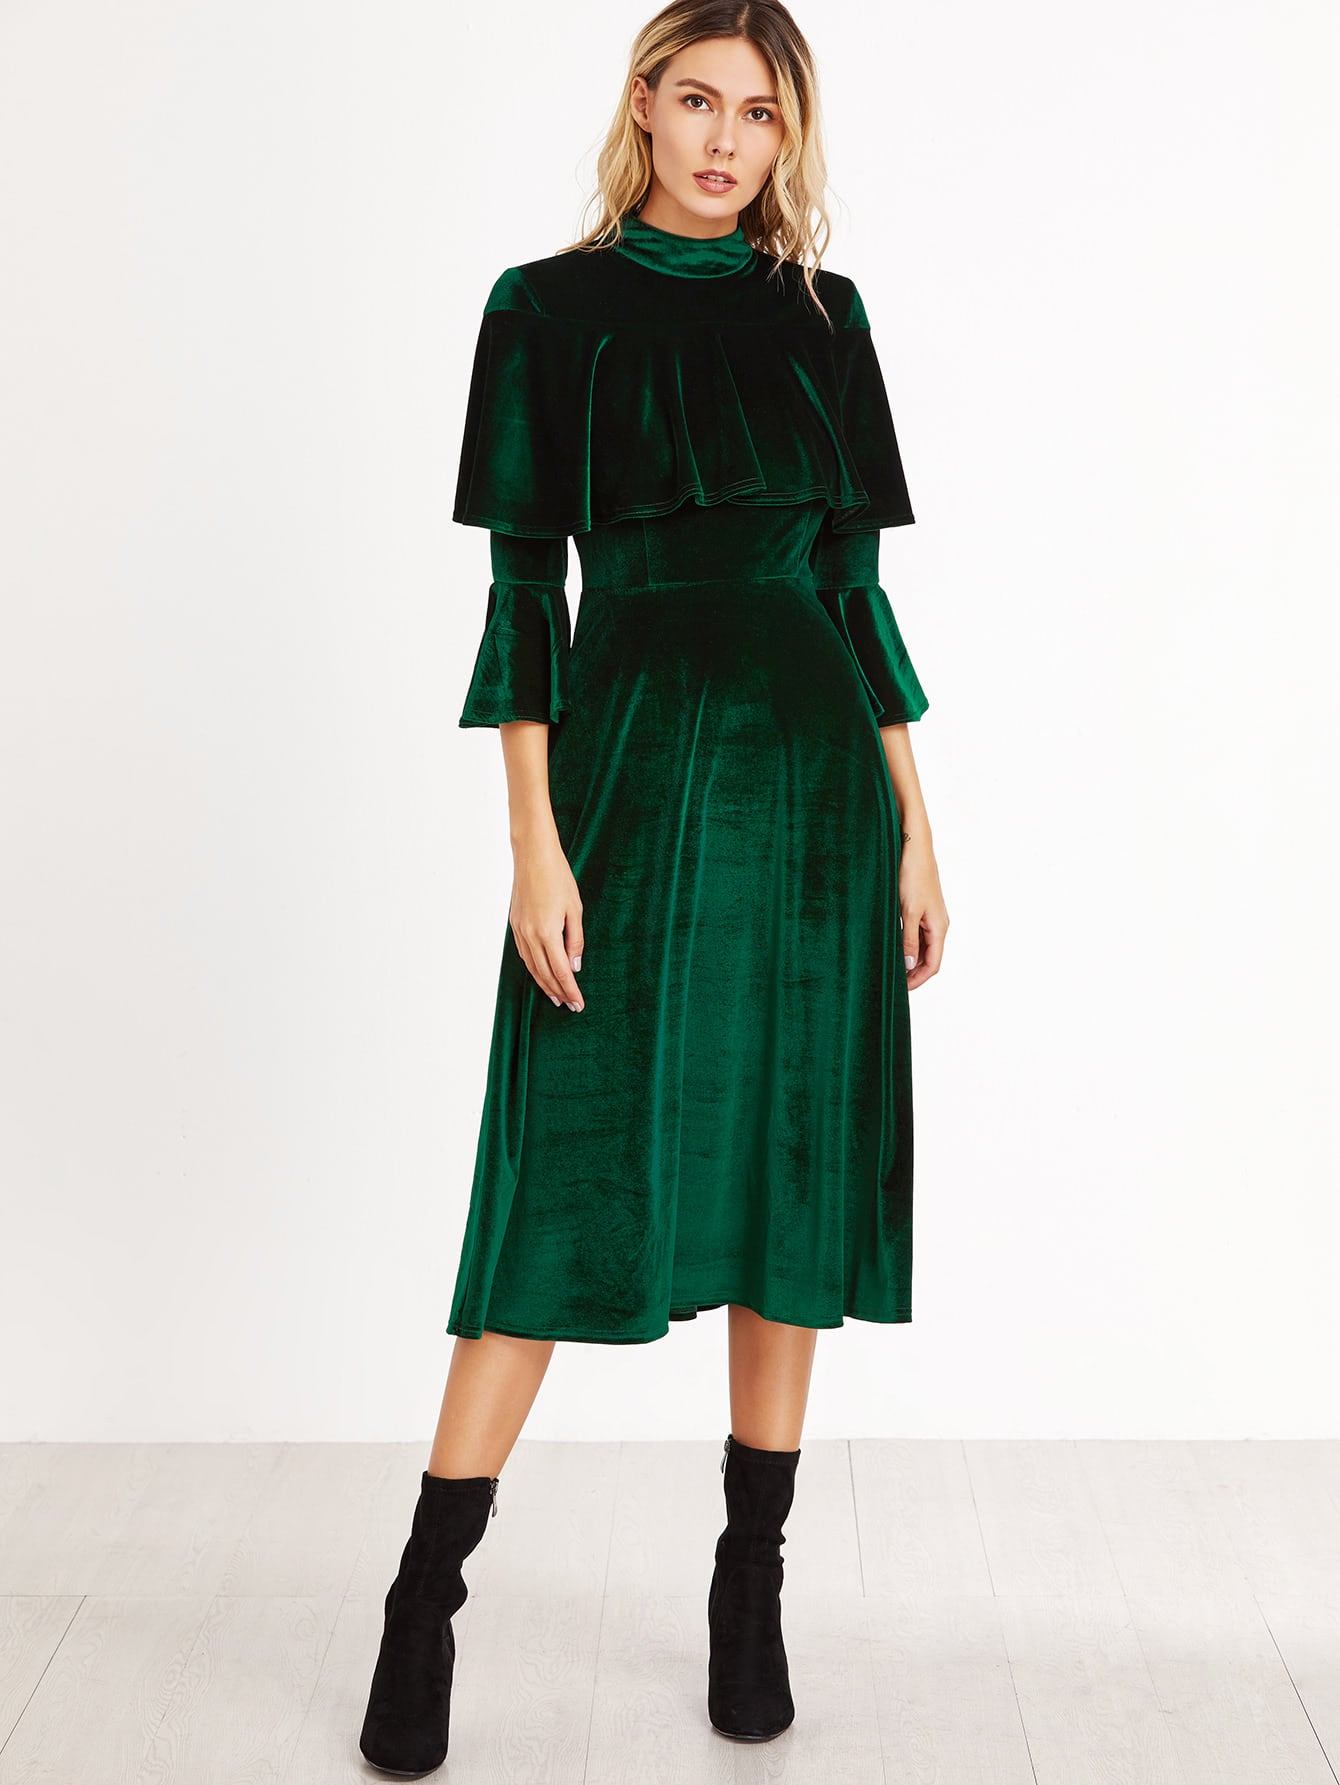 Green Ruffle Trim Bell Sleeve Velvet Midi DressGreen Ruffle Trim Bell Sleeve Velvet Midi Dress<br><br>color: Green<br>size: L,M,S,XS